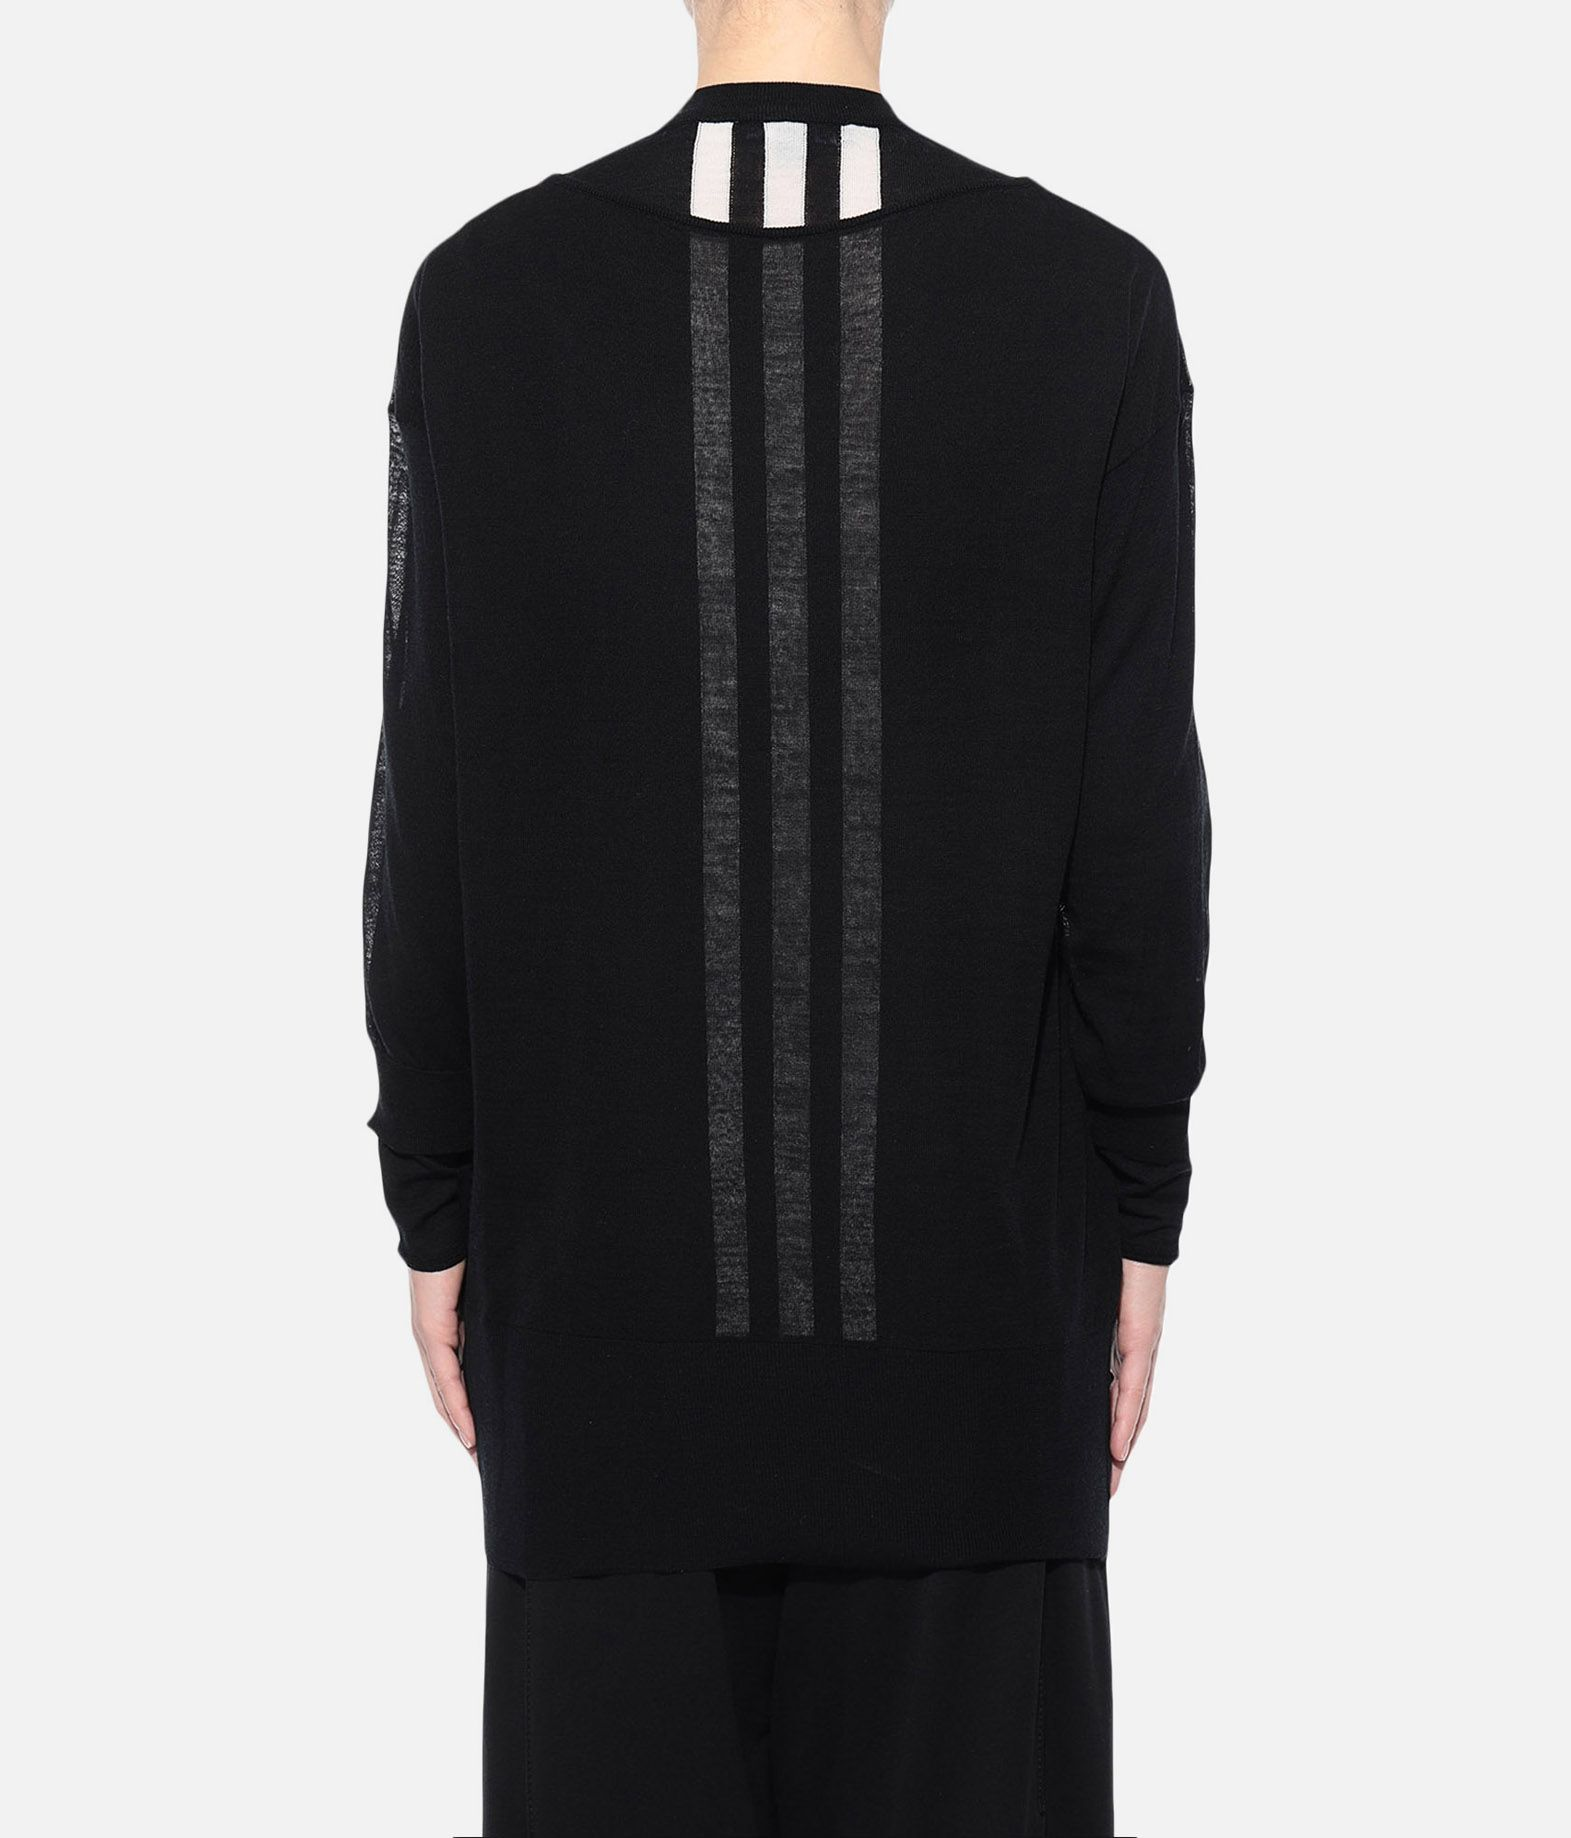 Y-3 Y-3 Layered Knitted Long Sweater Long sleeve sweater Woman d